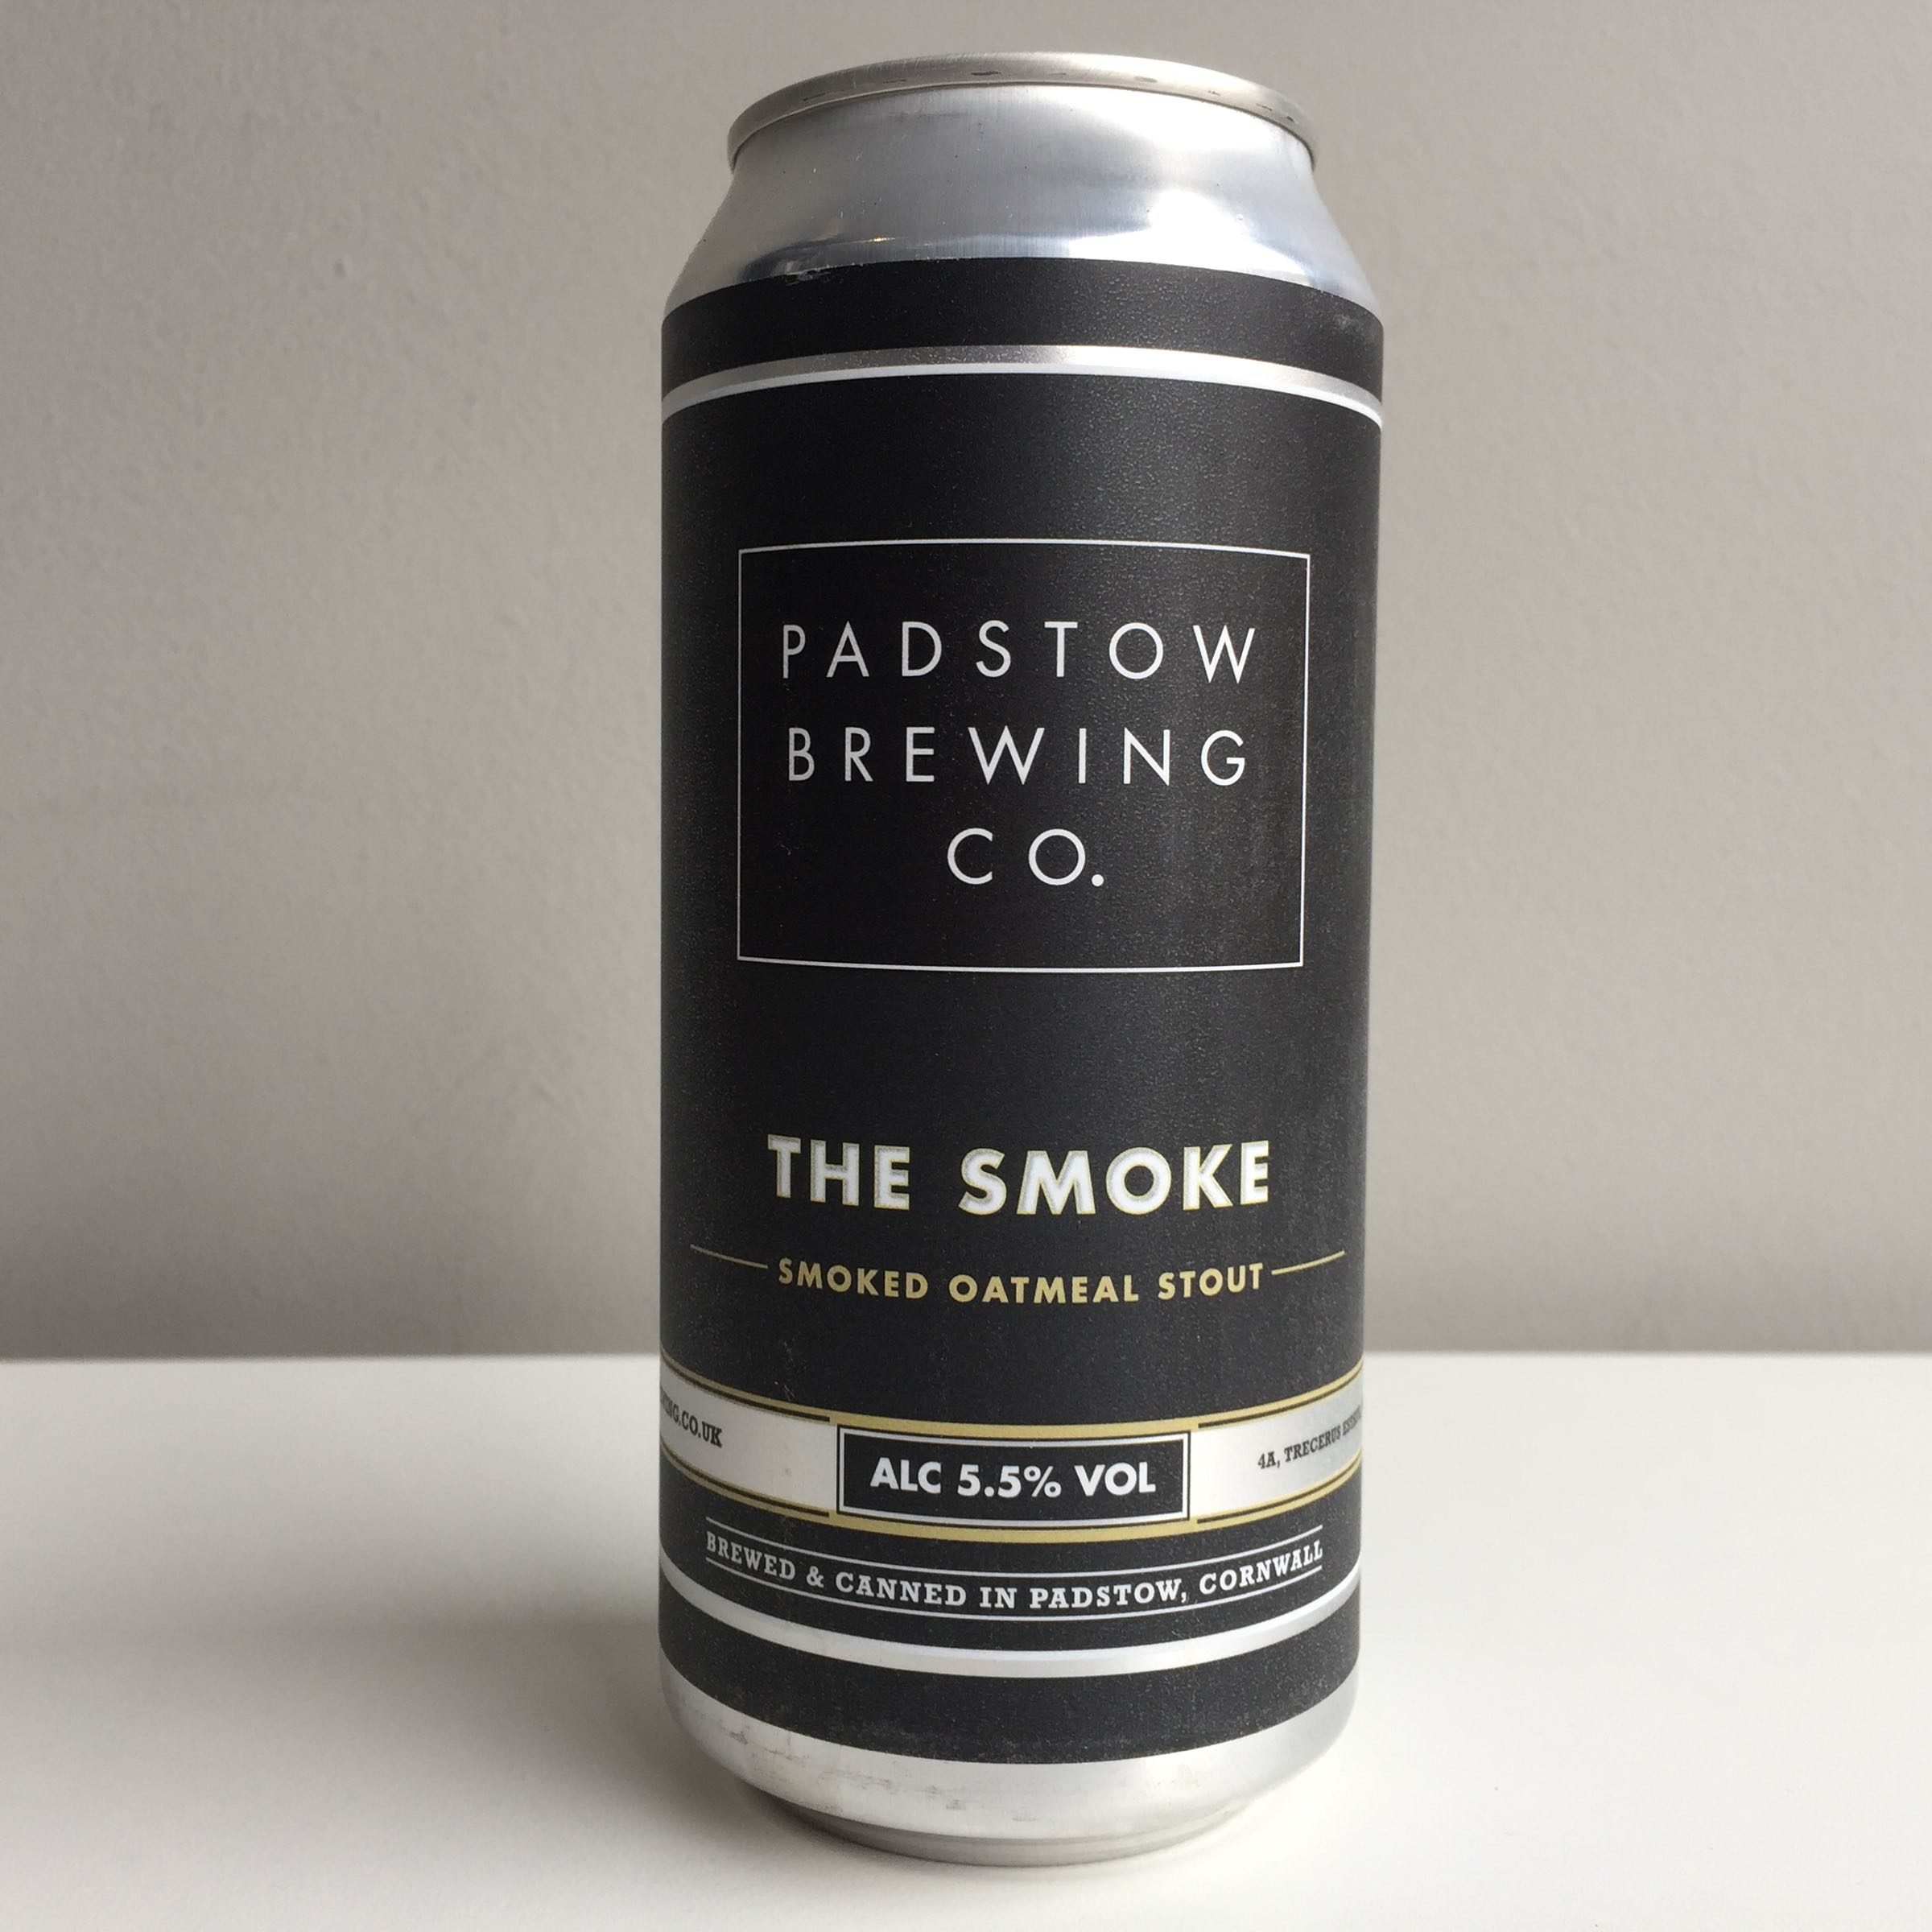 Padstow Brewing Co. 'The Smoke' Smoked Oatmeal Stout 440ml 5.5% ABV